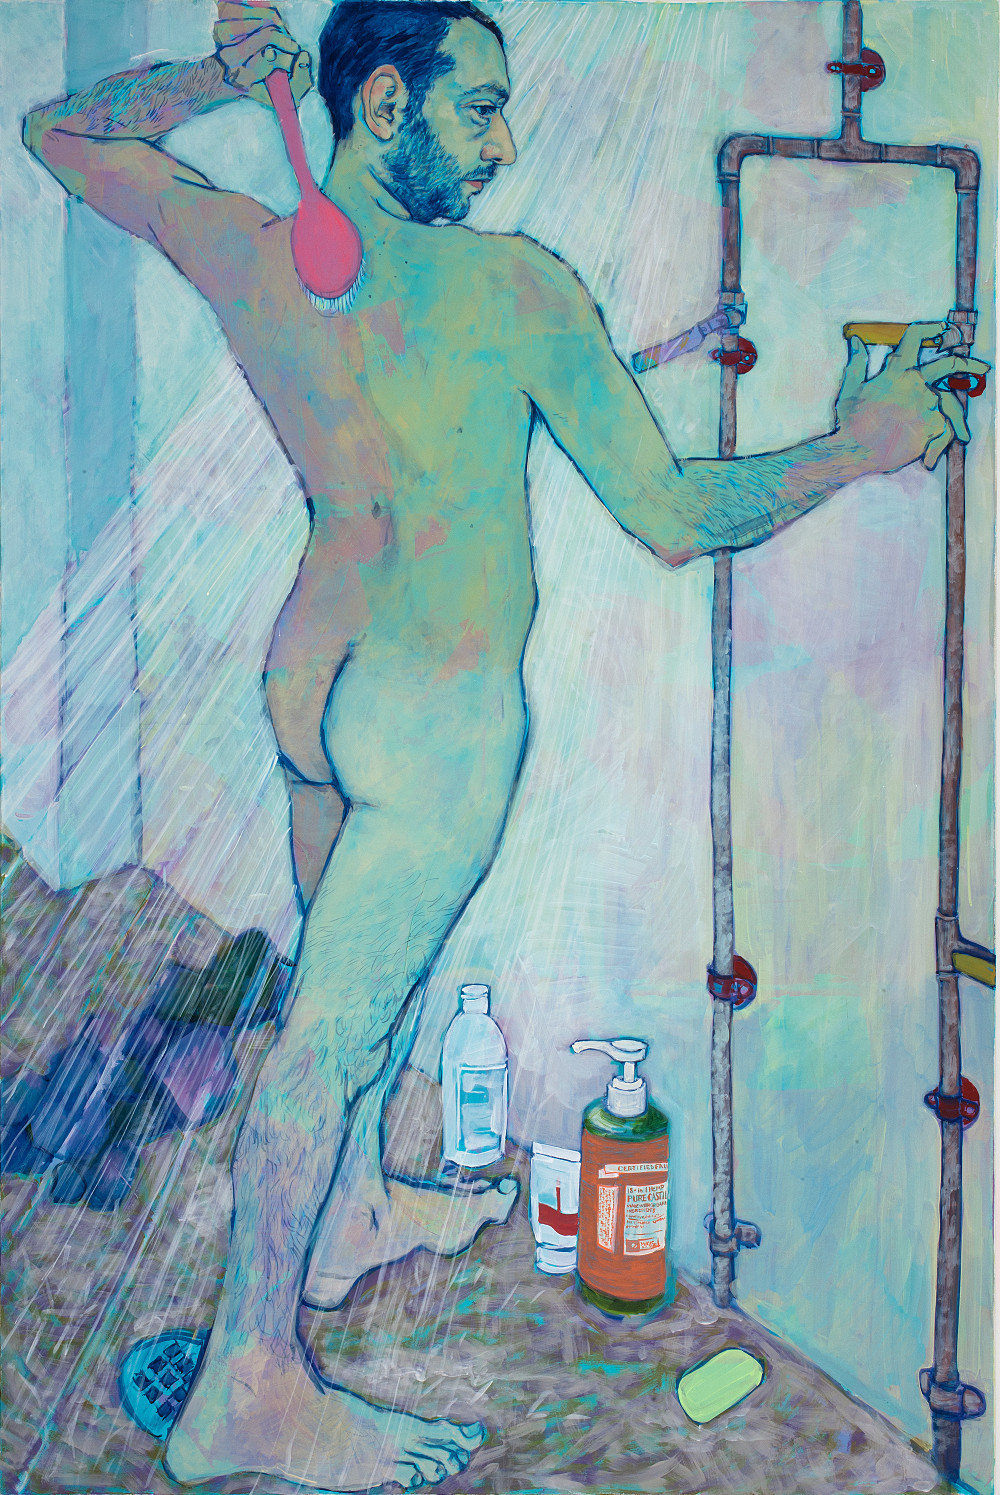 Afternoon Shower - Painting by Hope Gangloff